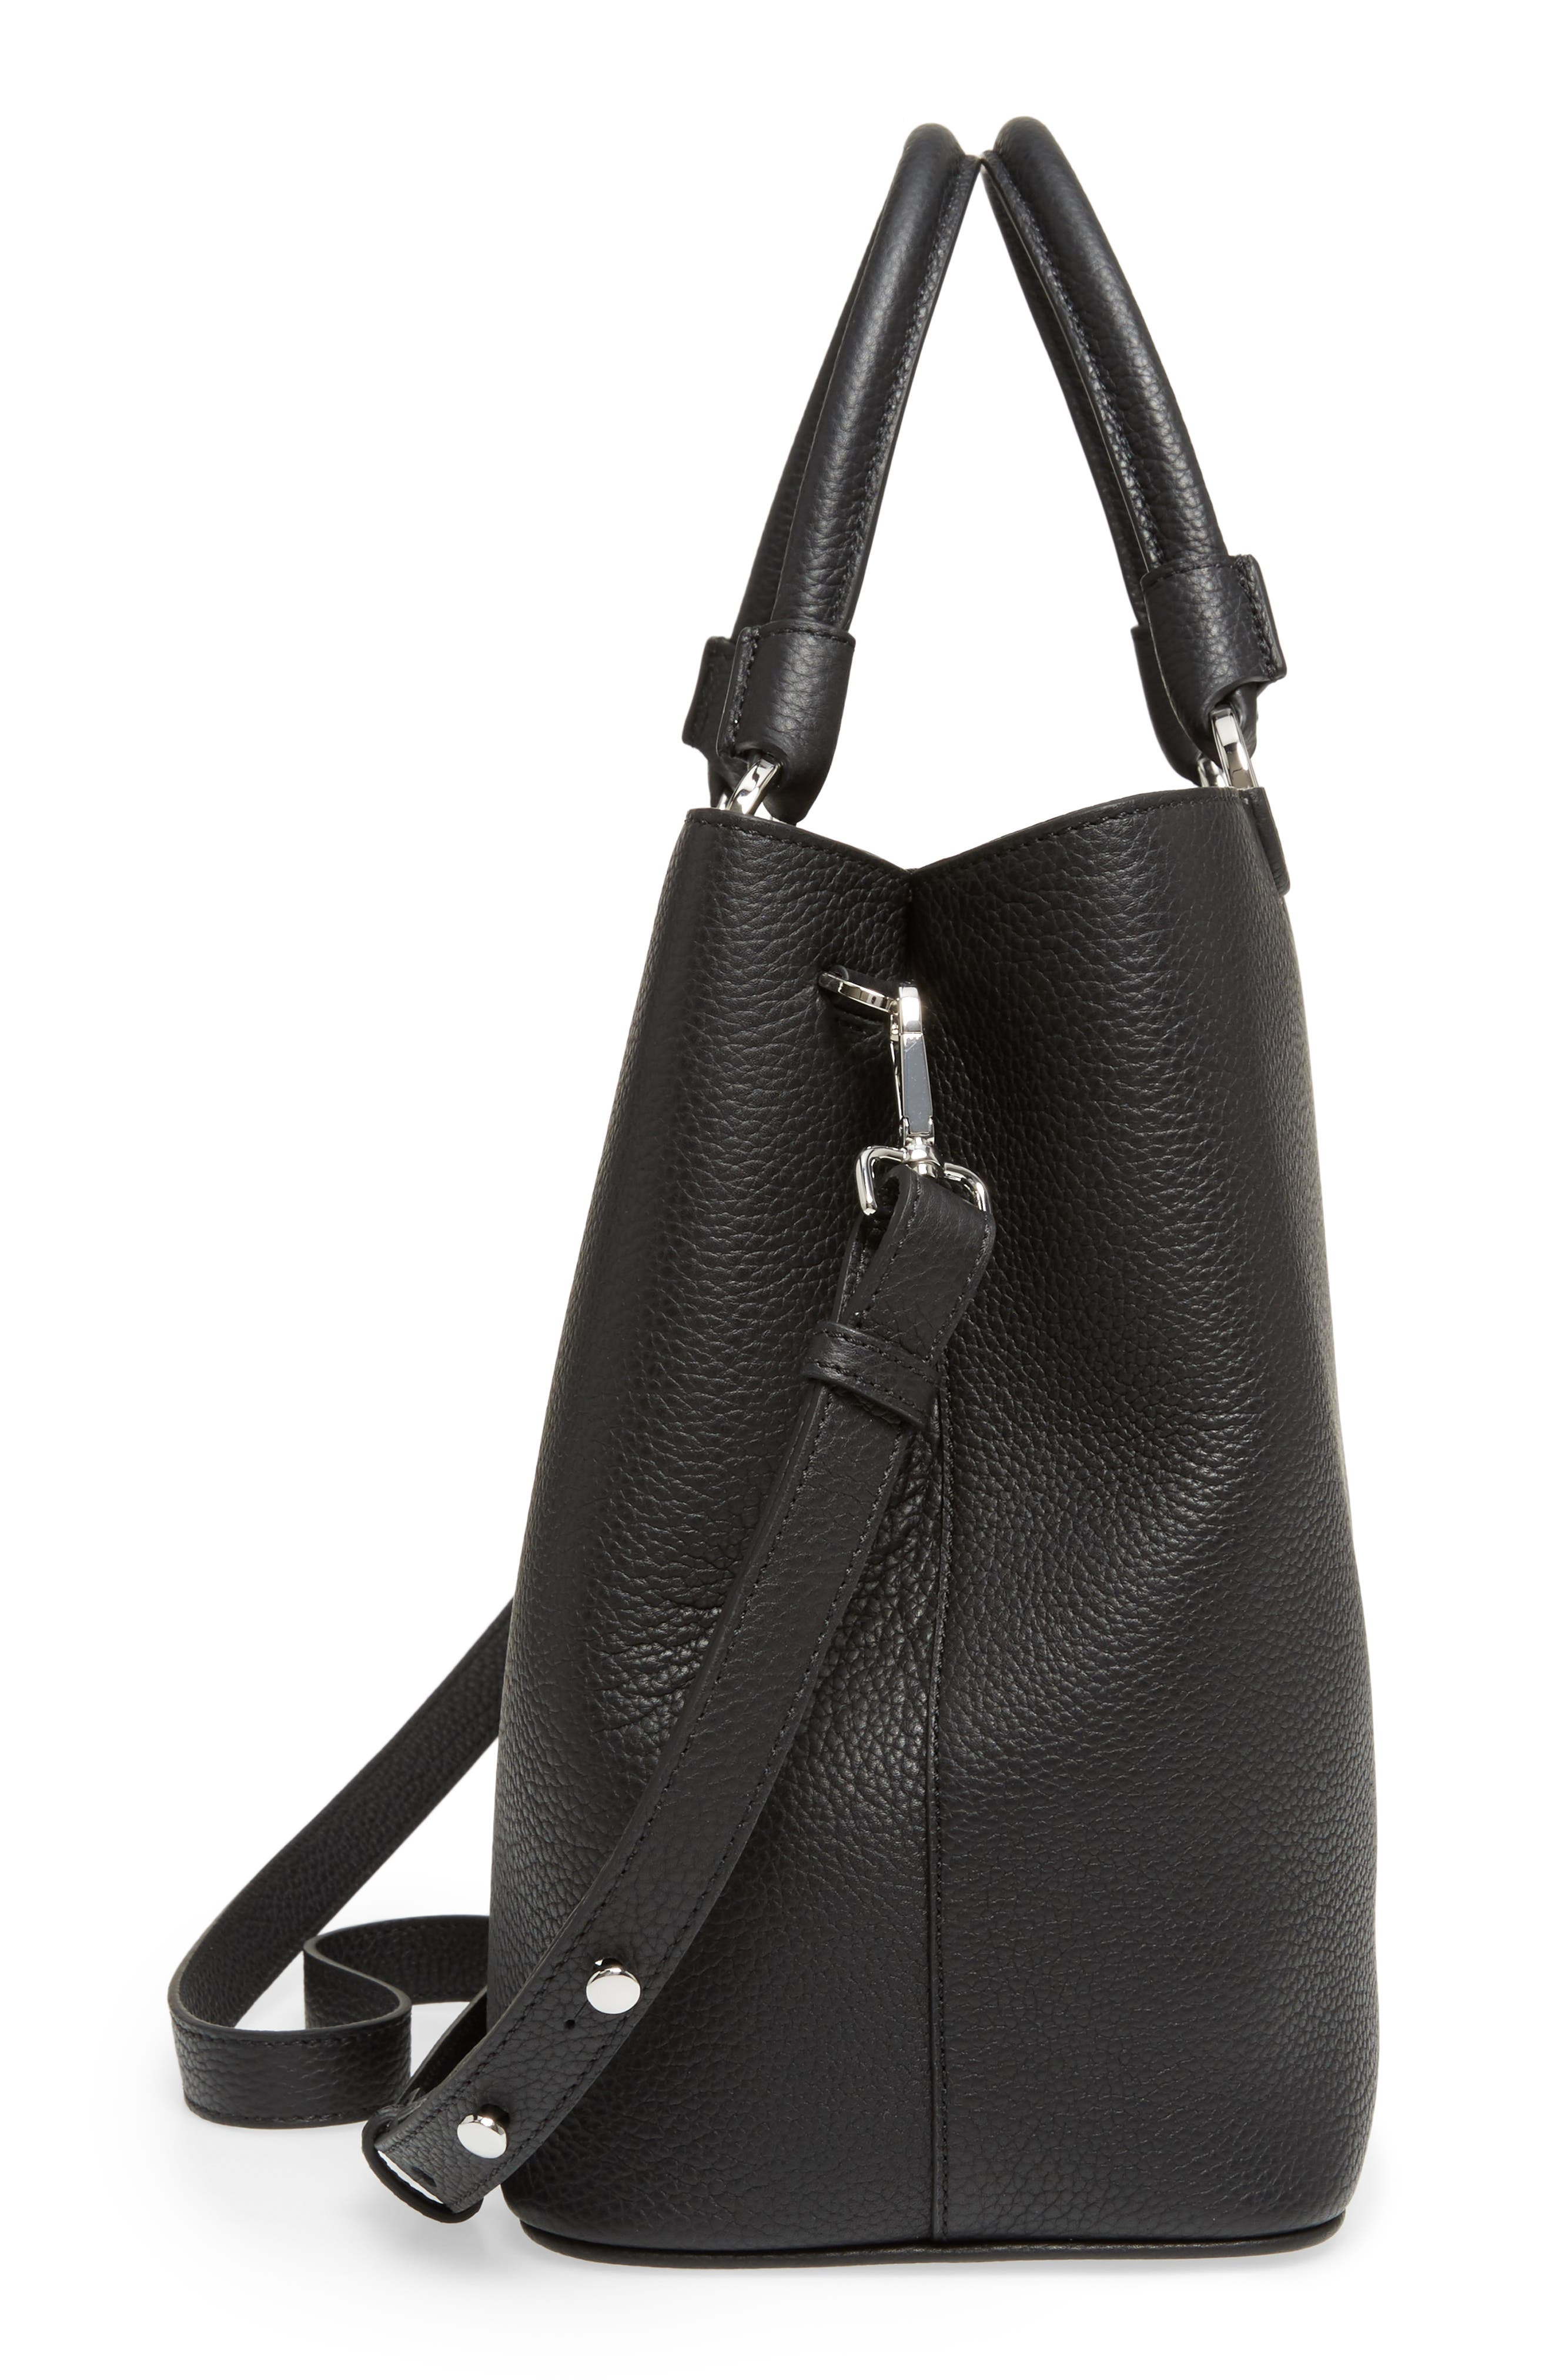 Veronica Cachemire Leather Tote,                             Alternate thumbnail 5, color,                             001